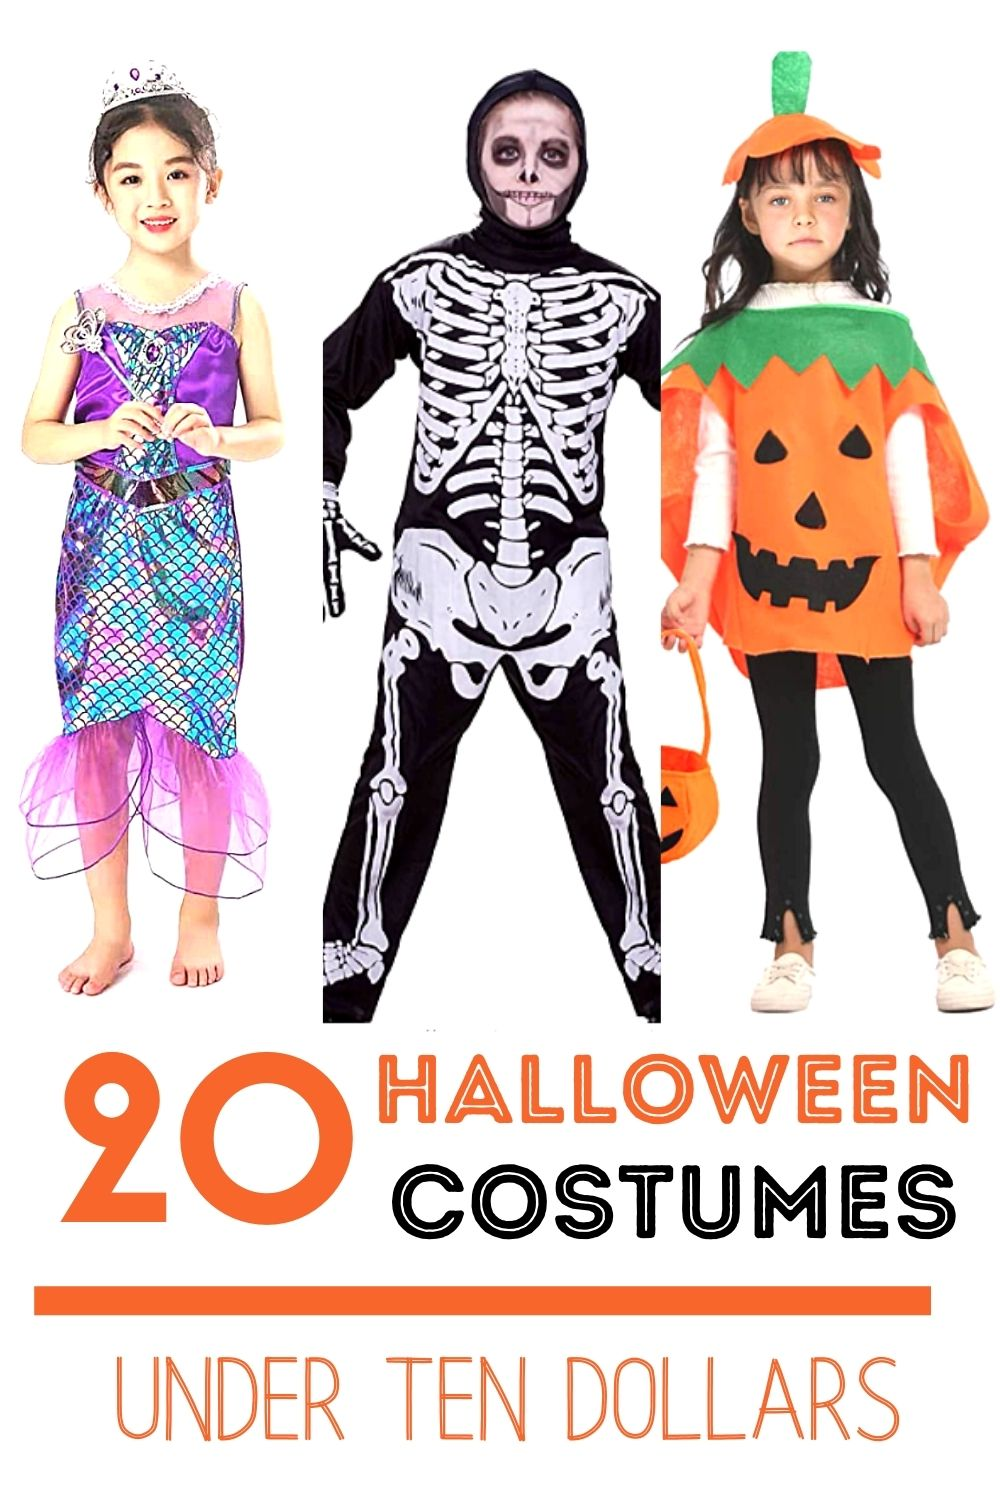 3 kids in Halloween costumes with the words 20 Halloween Costumes under ten dollars on it.